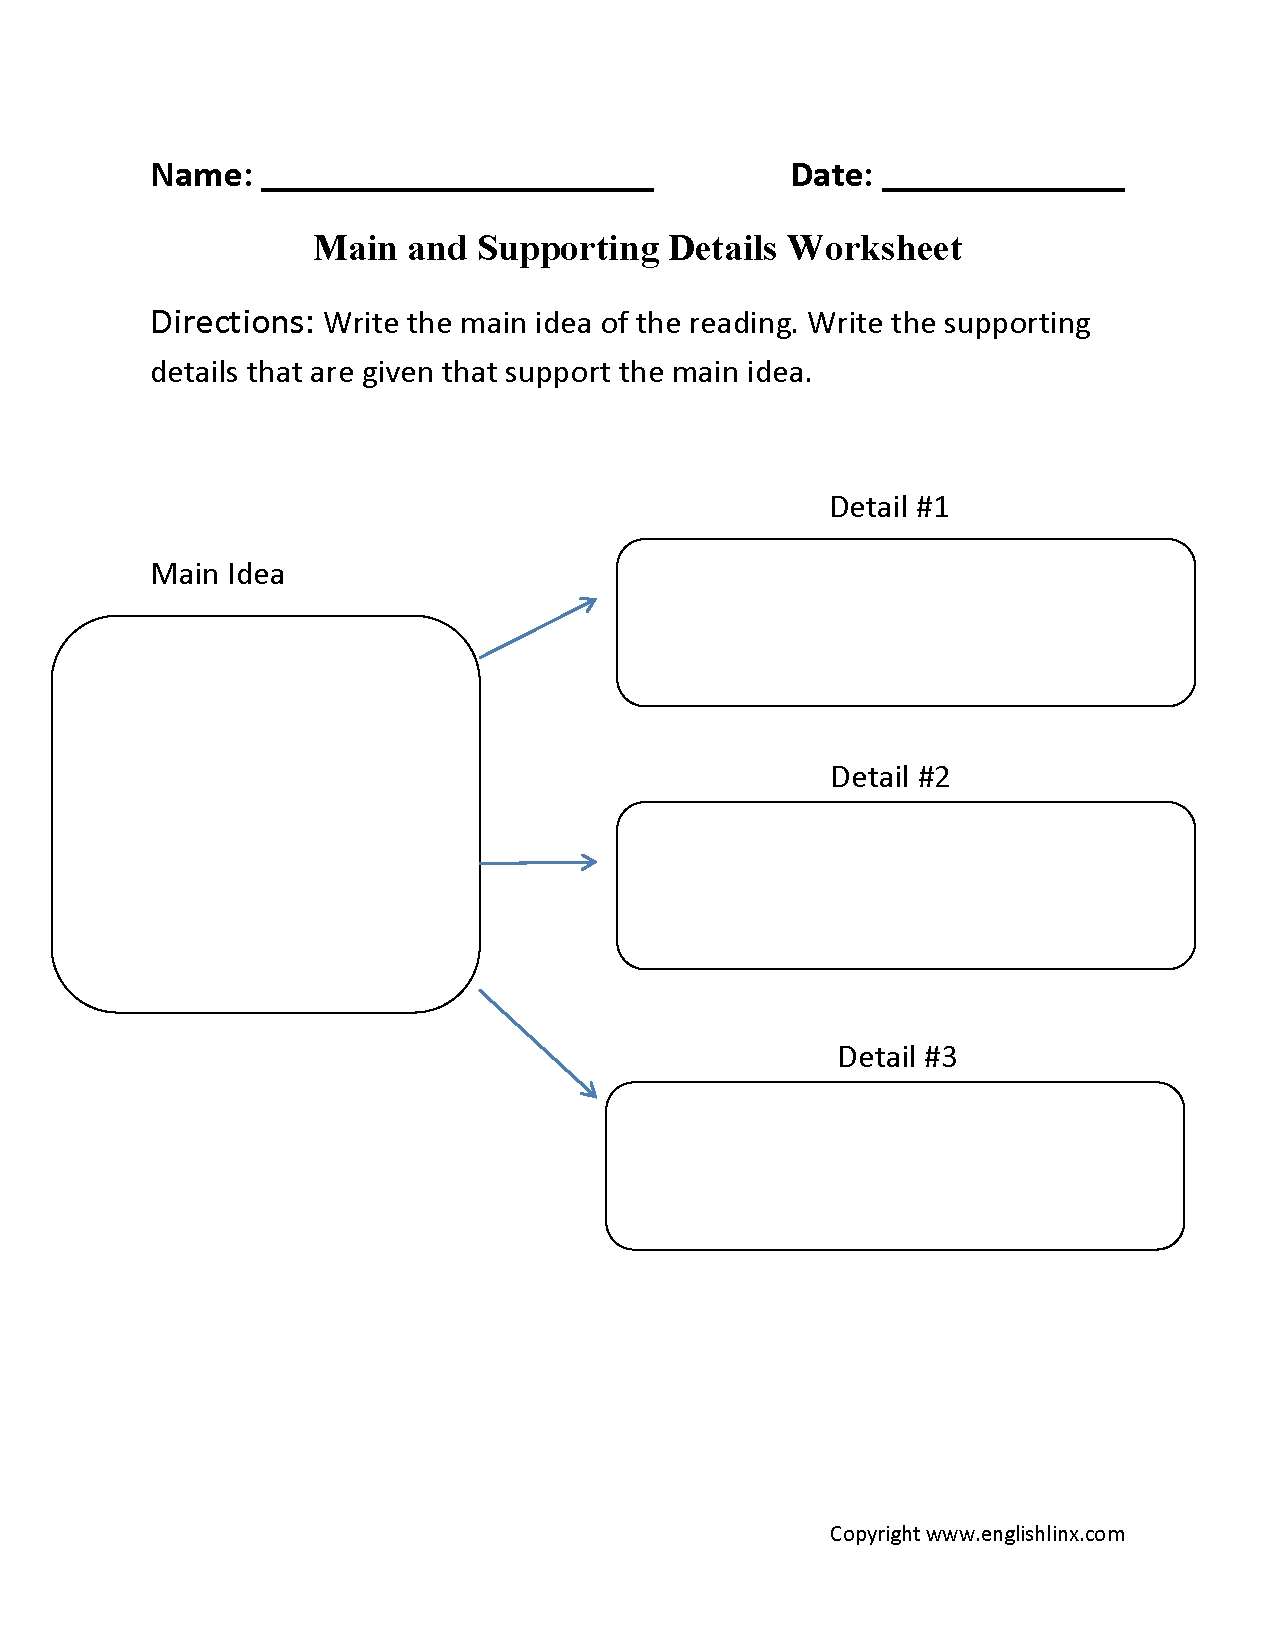 10 Stunning Main Idea And Supporting Details Worksheet 2019